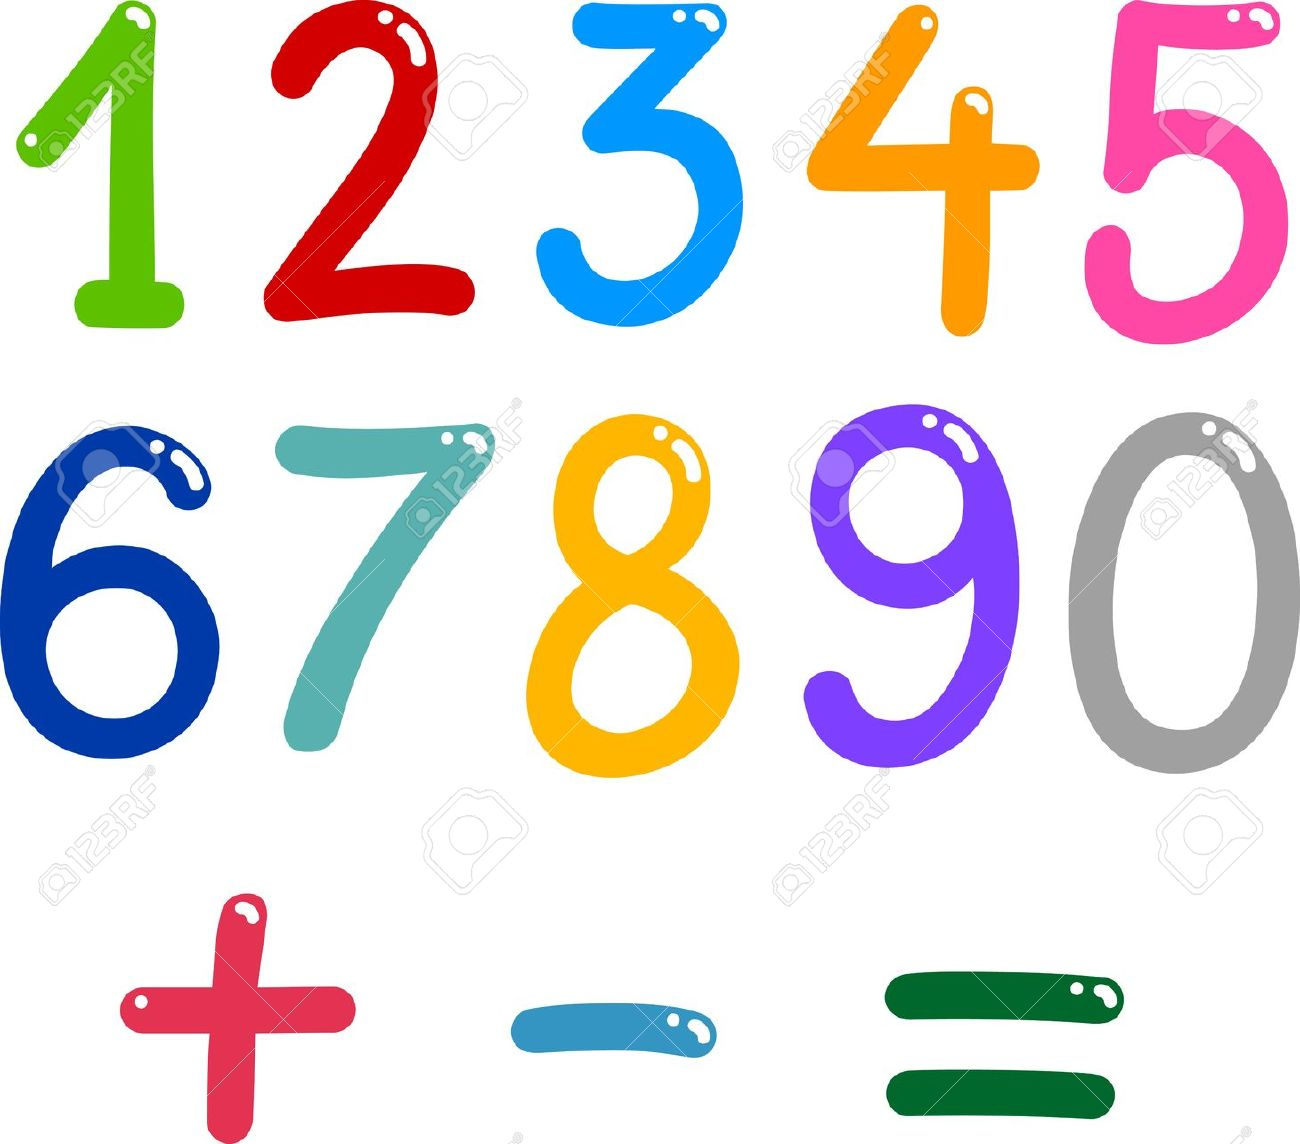 Collection mathematics clipart.